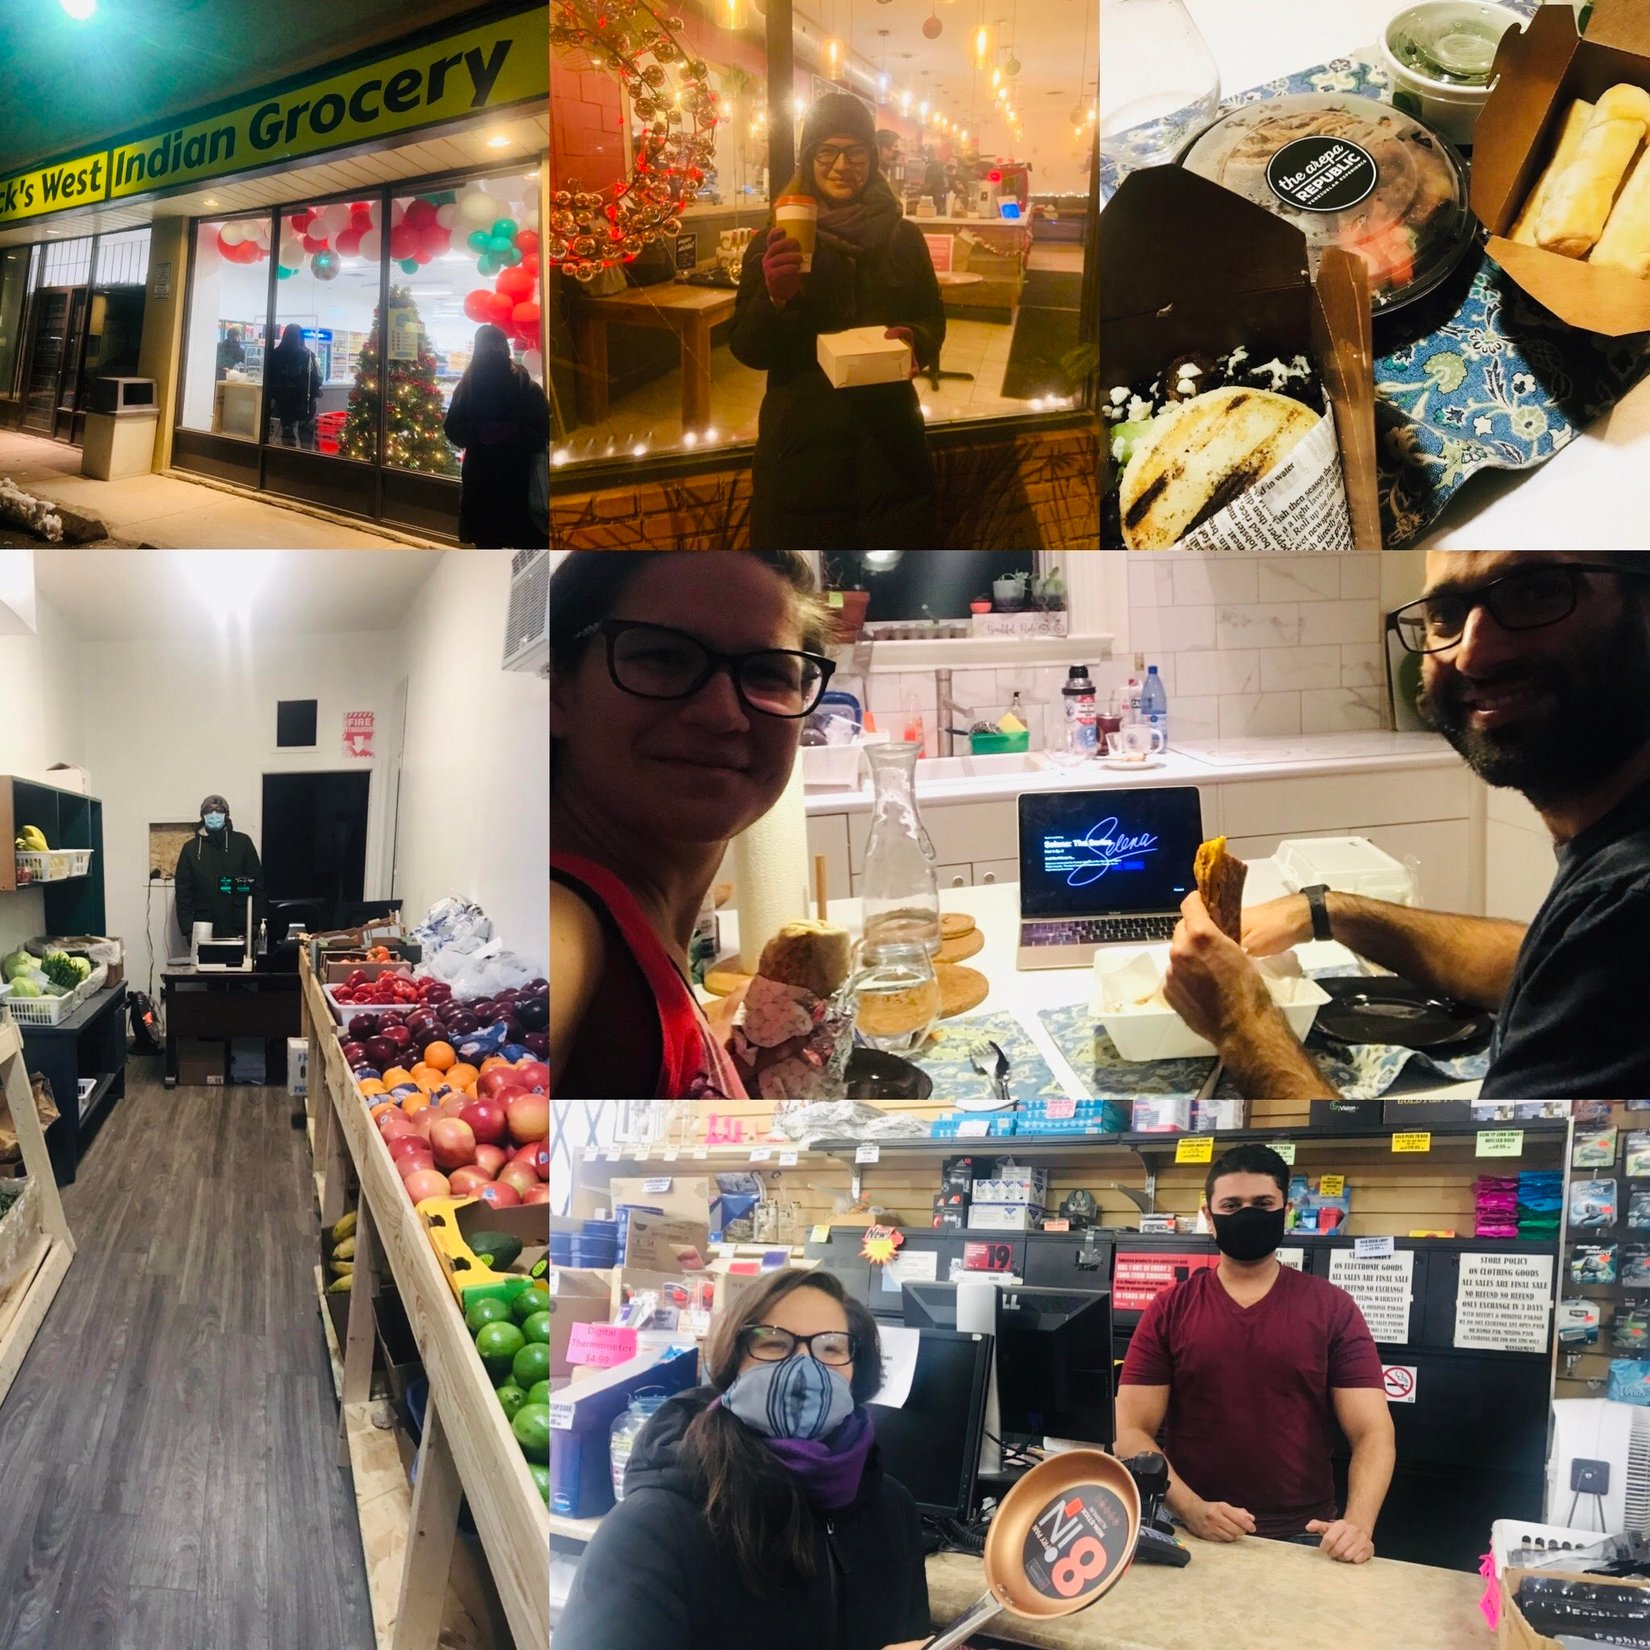 collage of various photos of Chiara at local businesses including: Bannock's West Indian Grocery, Supercoffee, the Arepa Republic, Humber River Fruit and Veggie Market, Enchilados Taqueria and Canadian Outlet Store